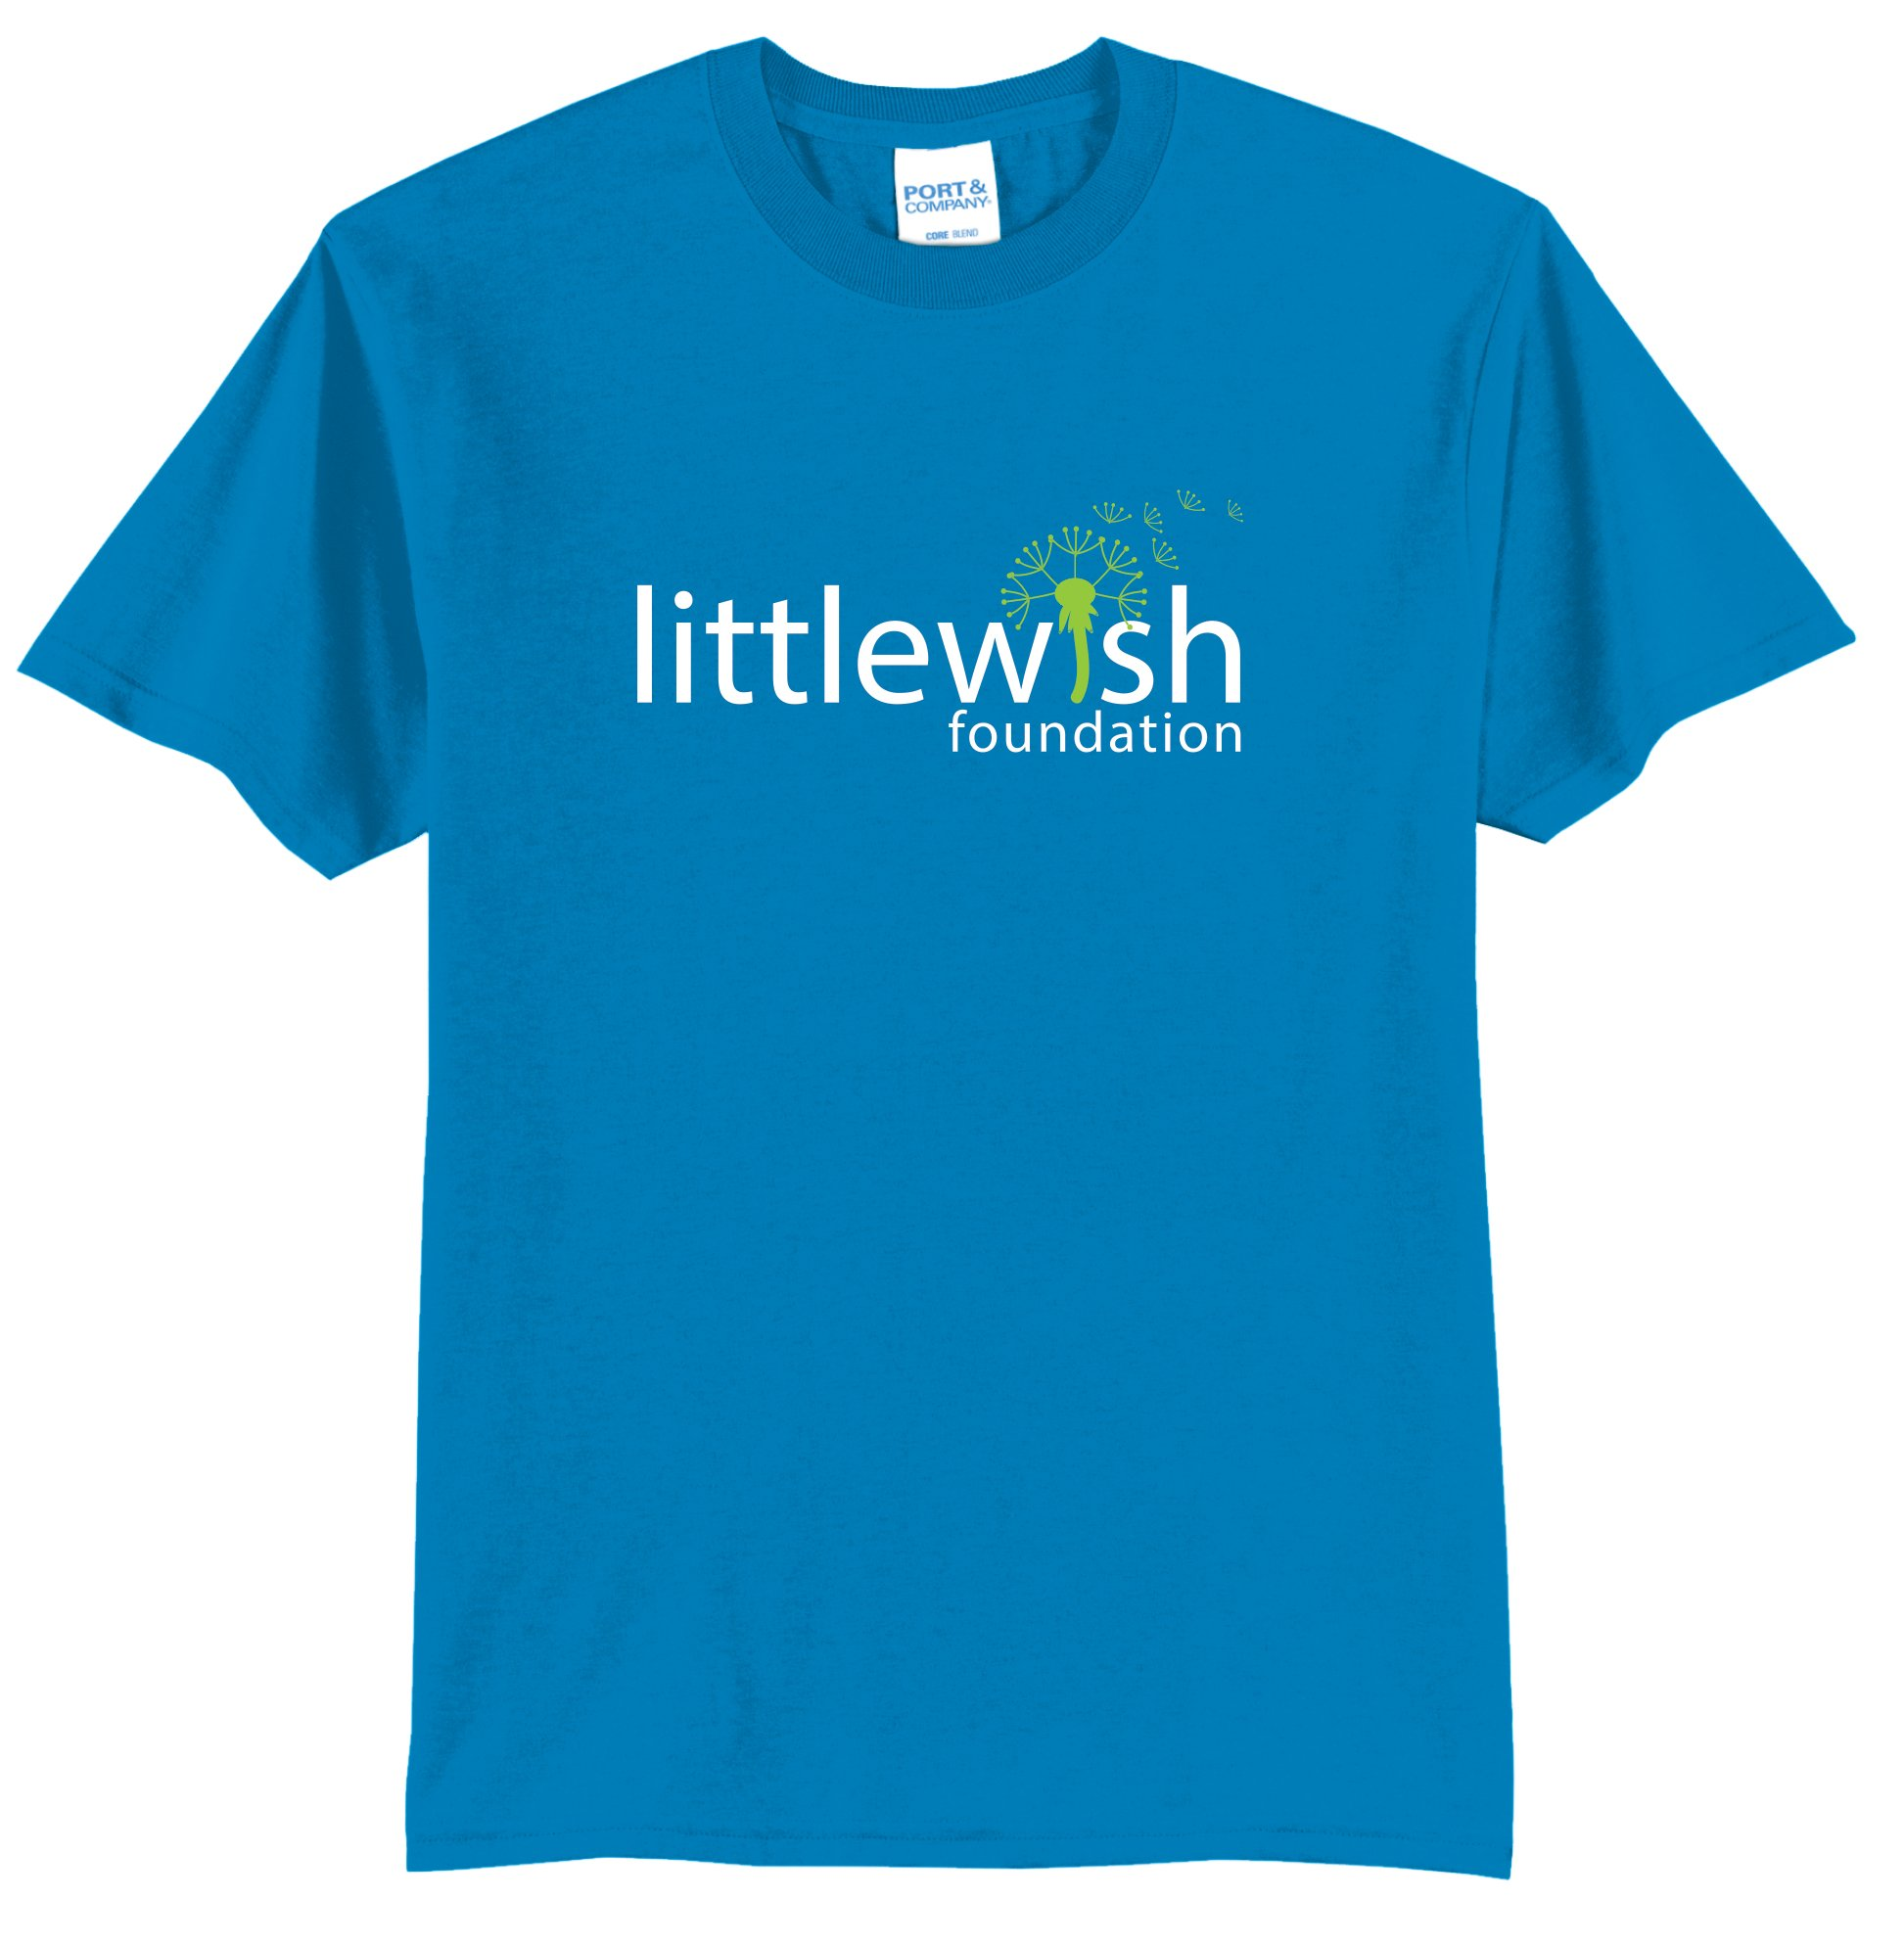 Little Wish Foundation Child T-shirt 00002